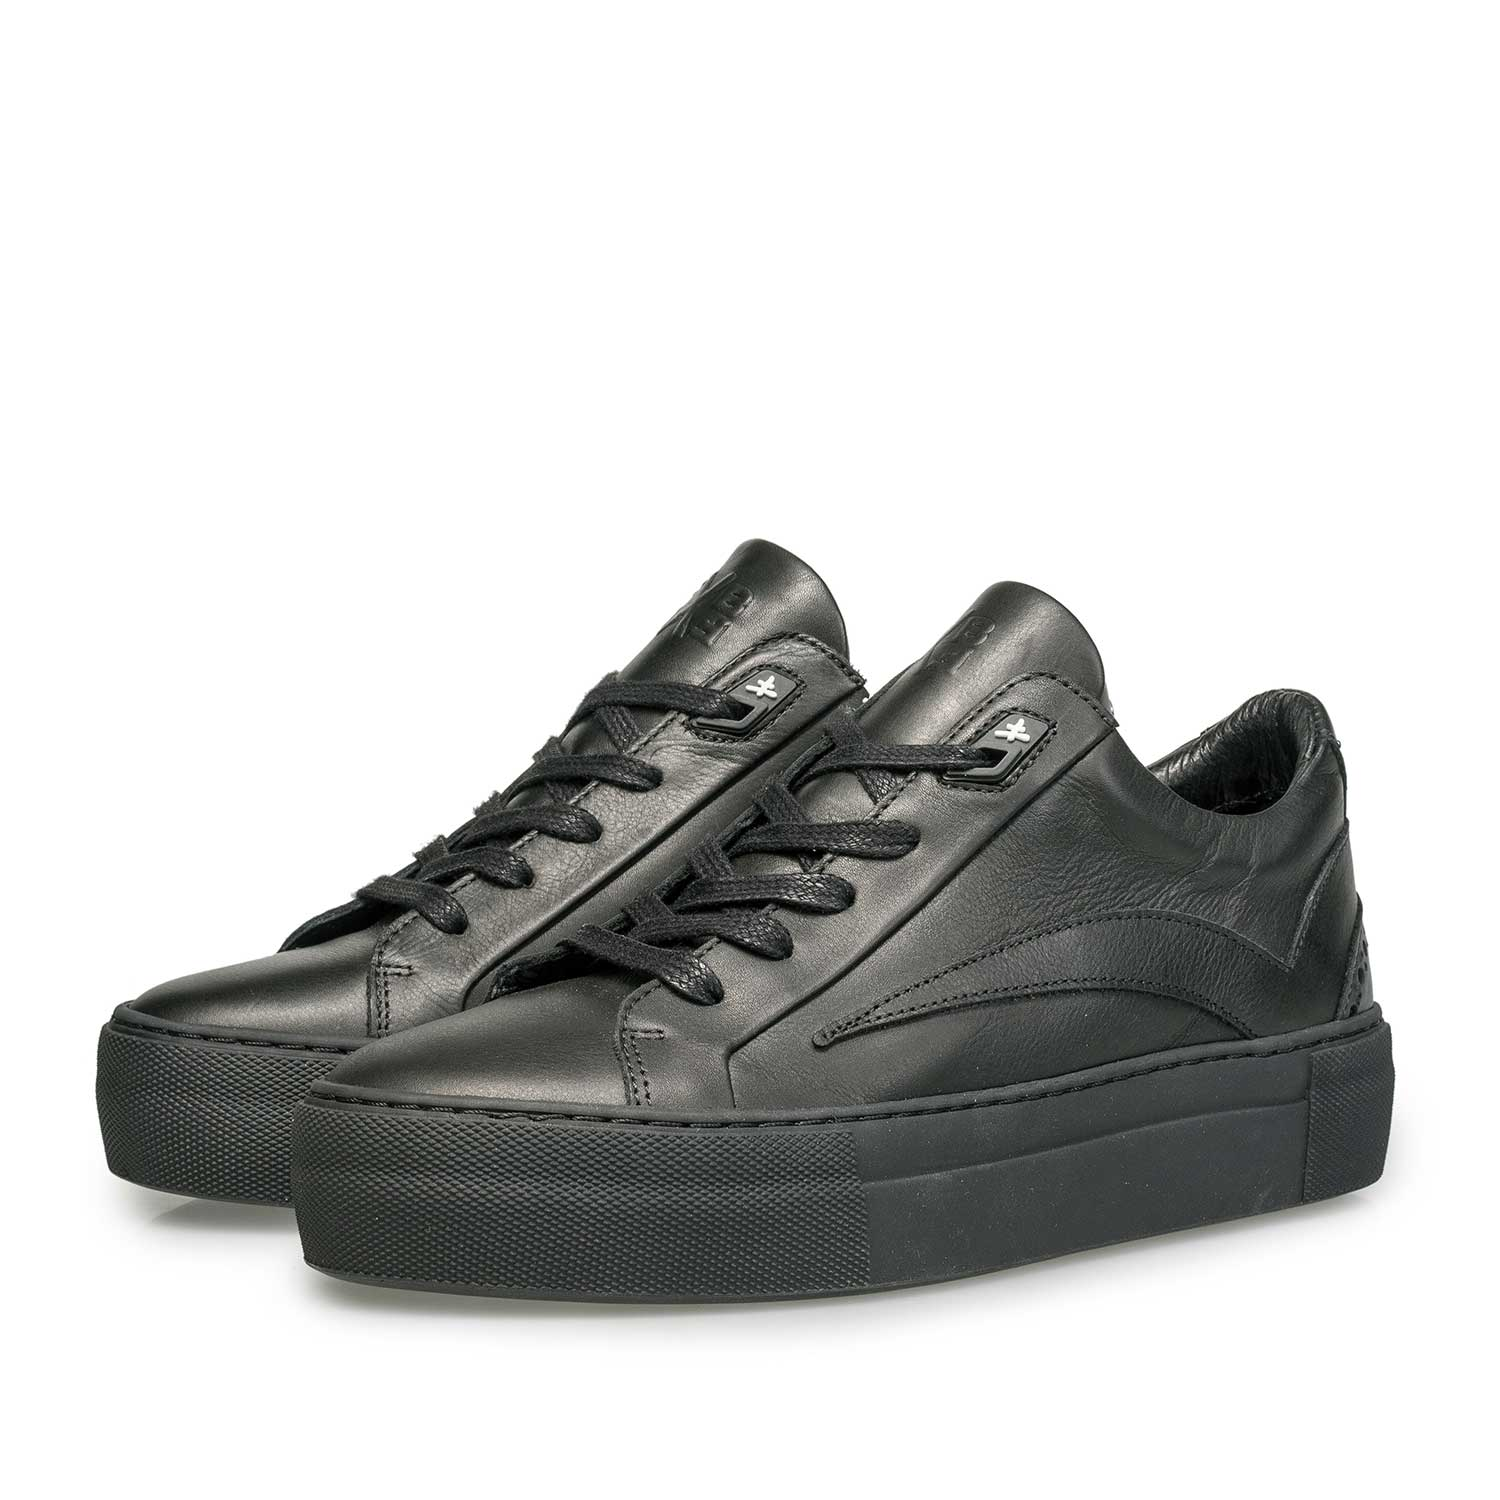 85252/07 - Black leather sneaker with a black cup sole